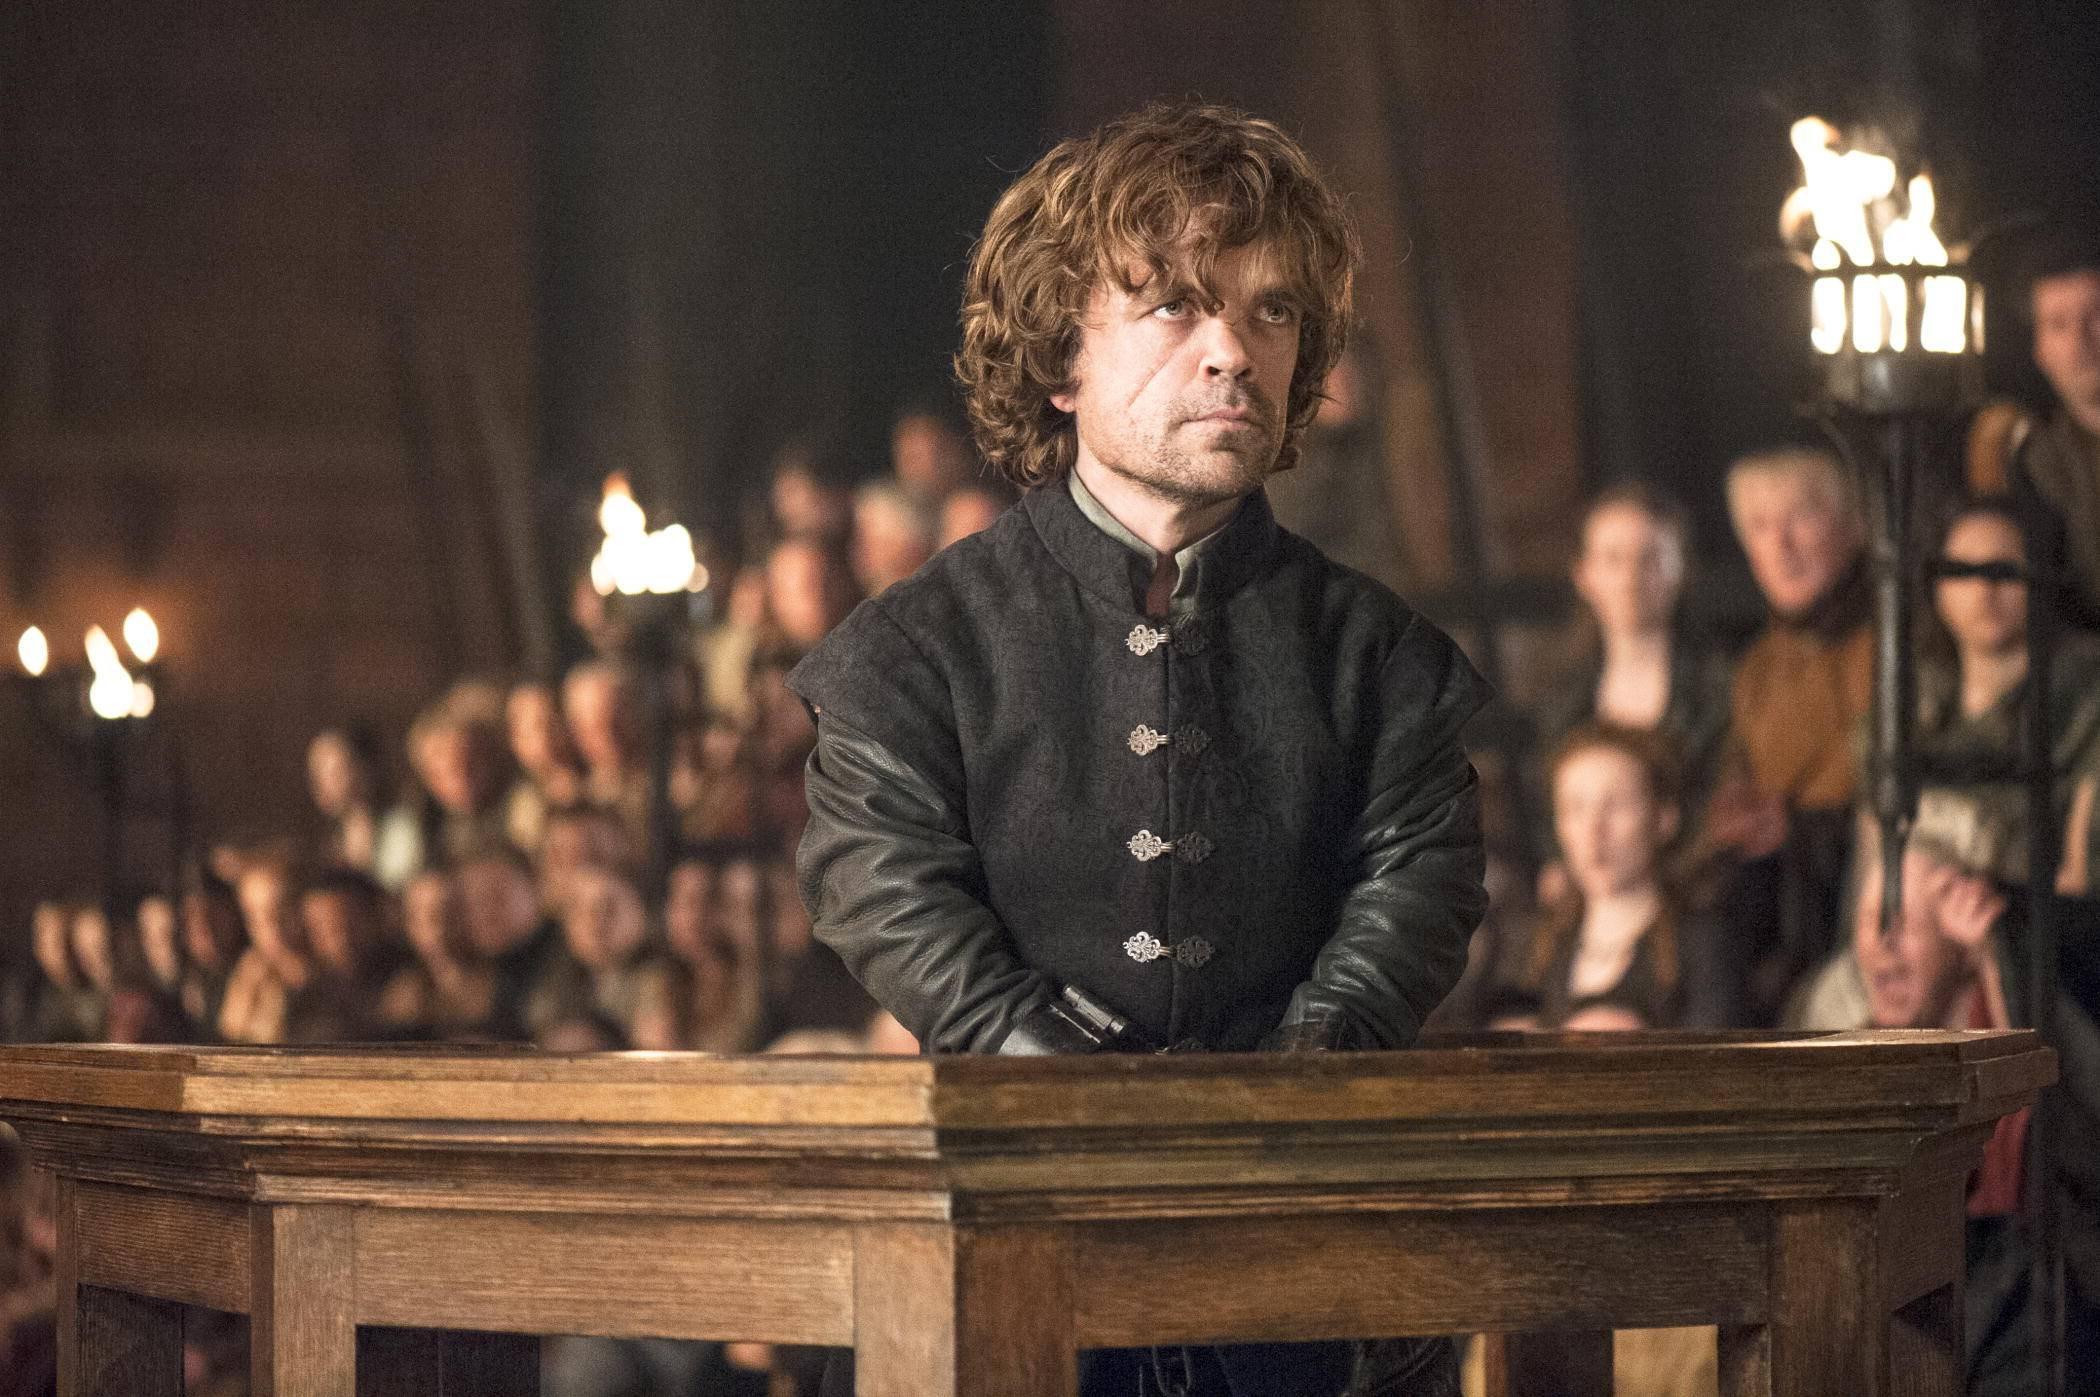 """Game of Thrones"" starring Peter Dinklage has garnered 19 Emmy Award nominations, including one for best drama series."